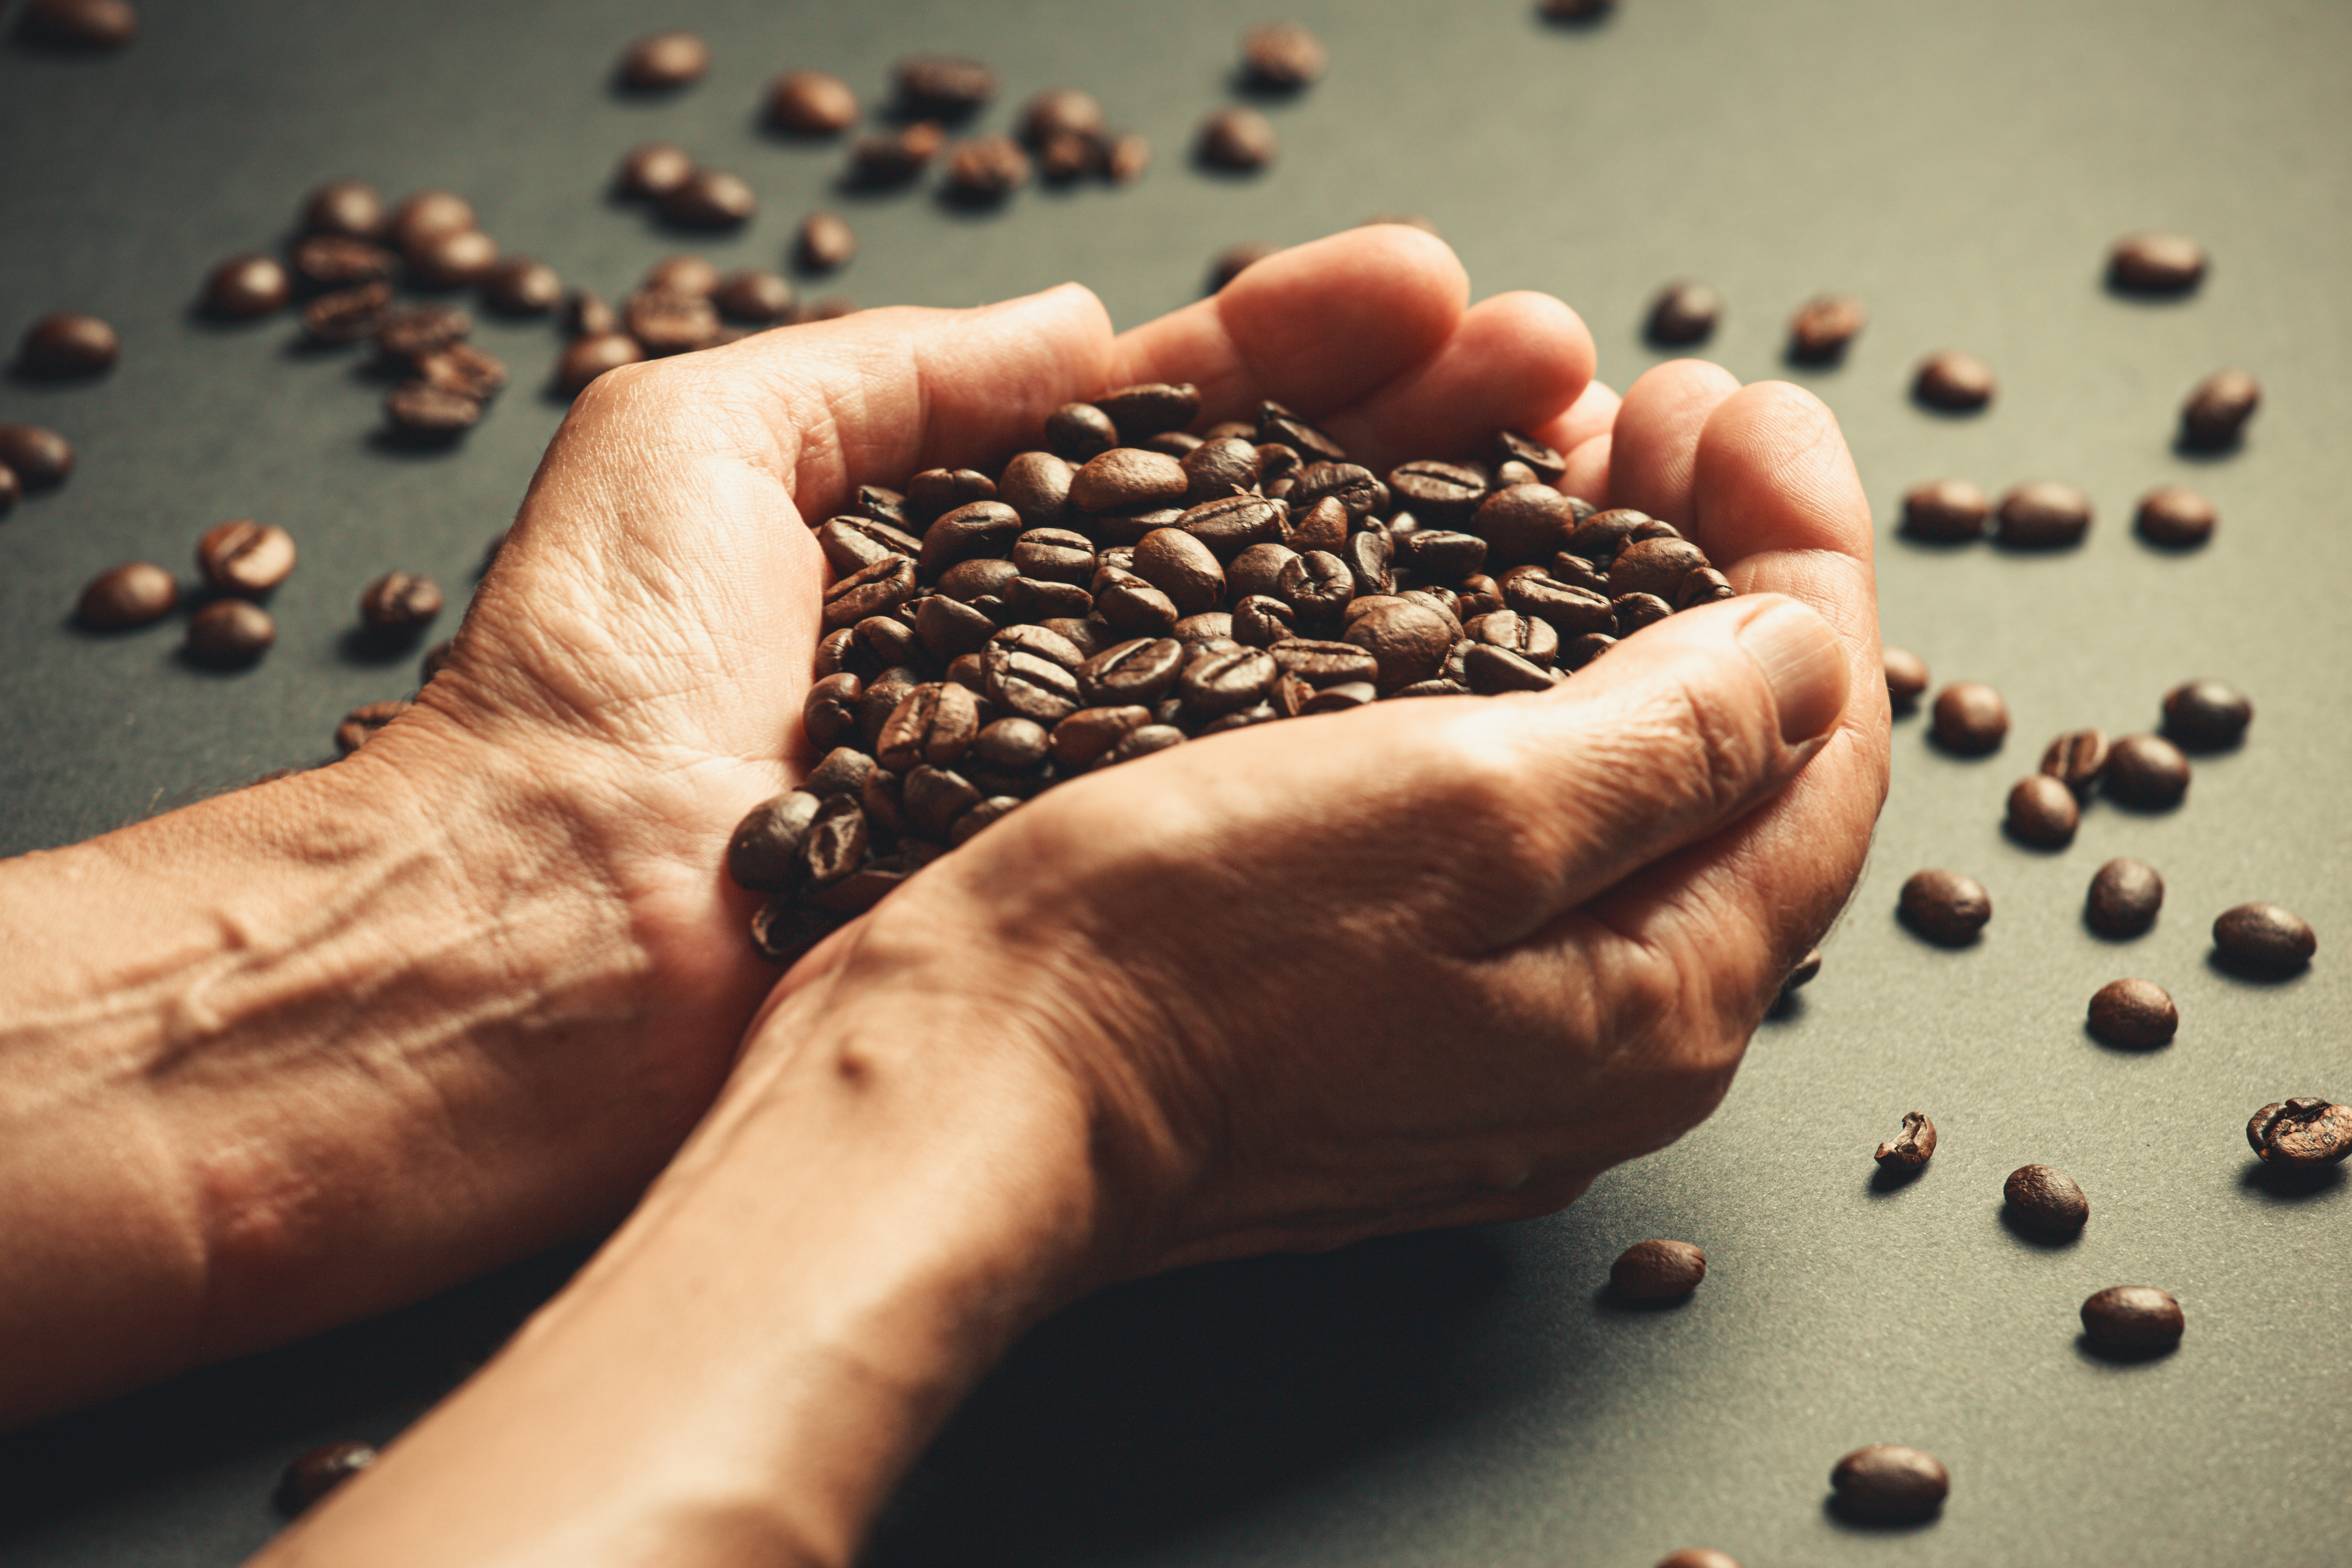 Old hands holding a lot of coffee beans